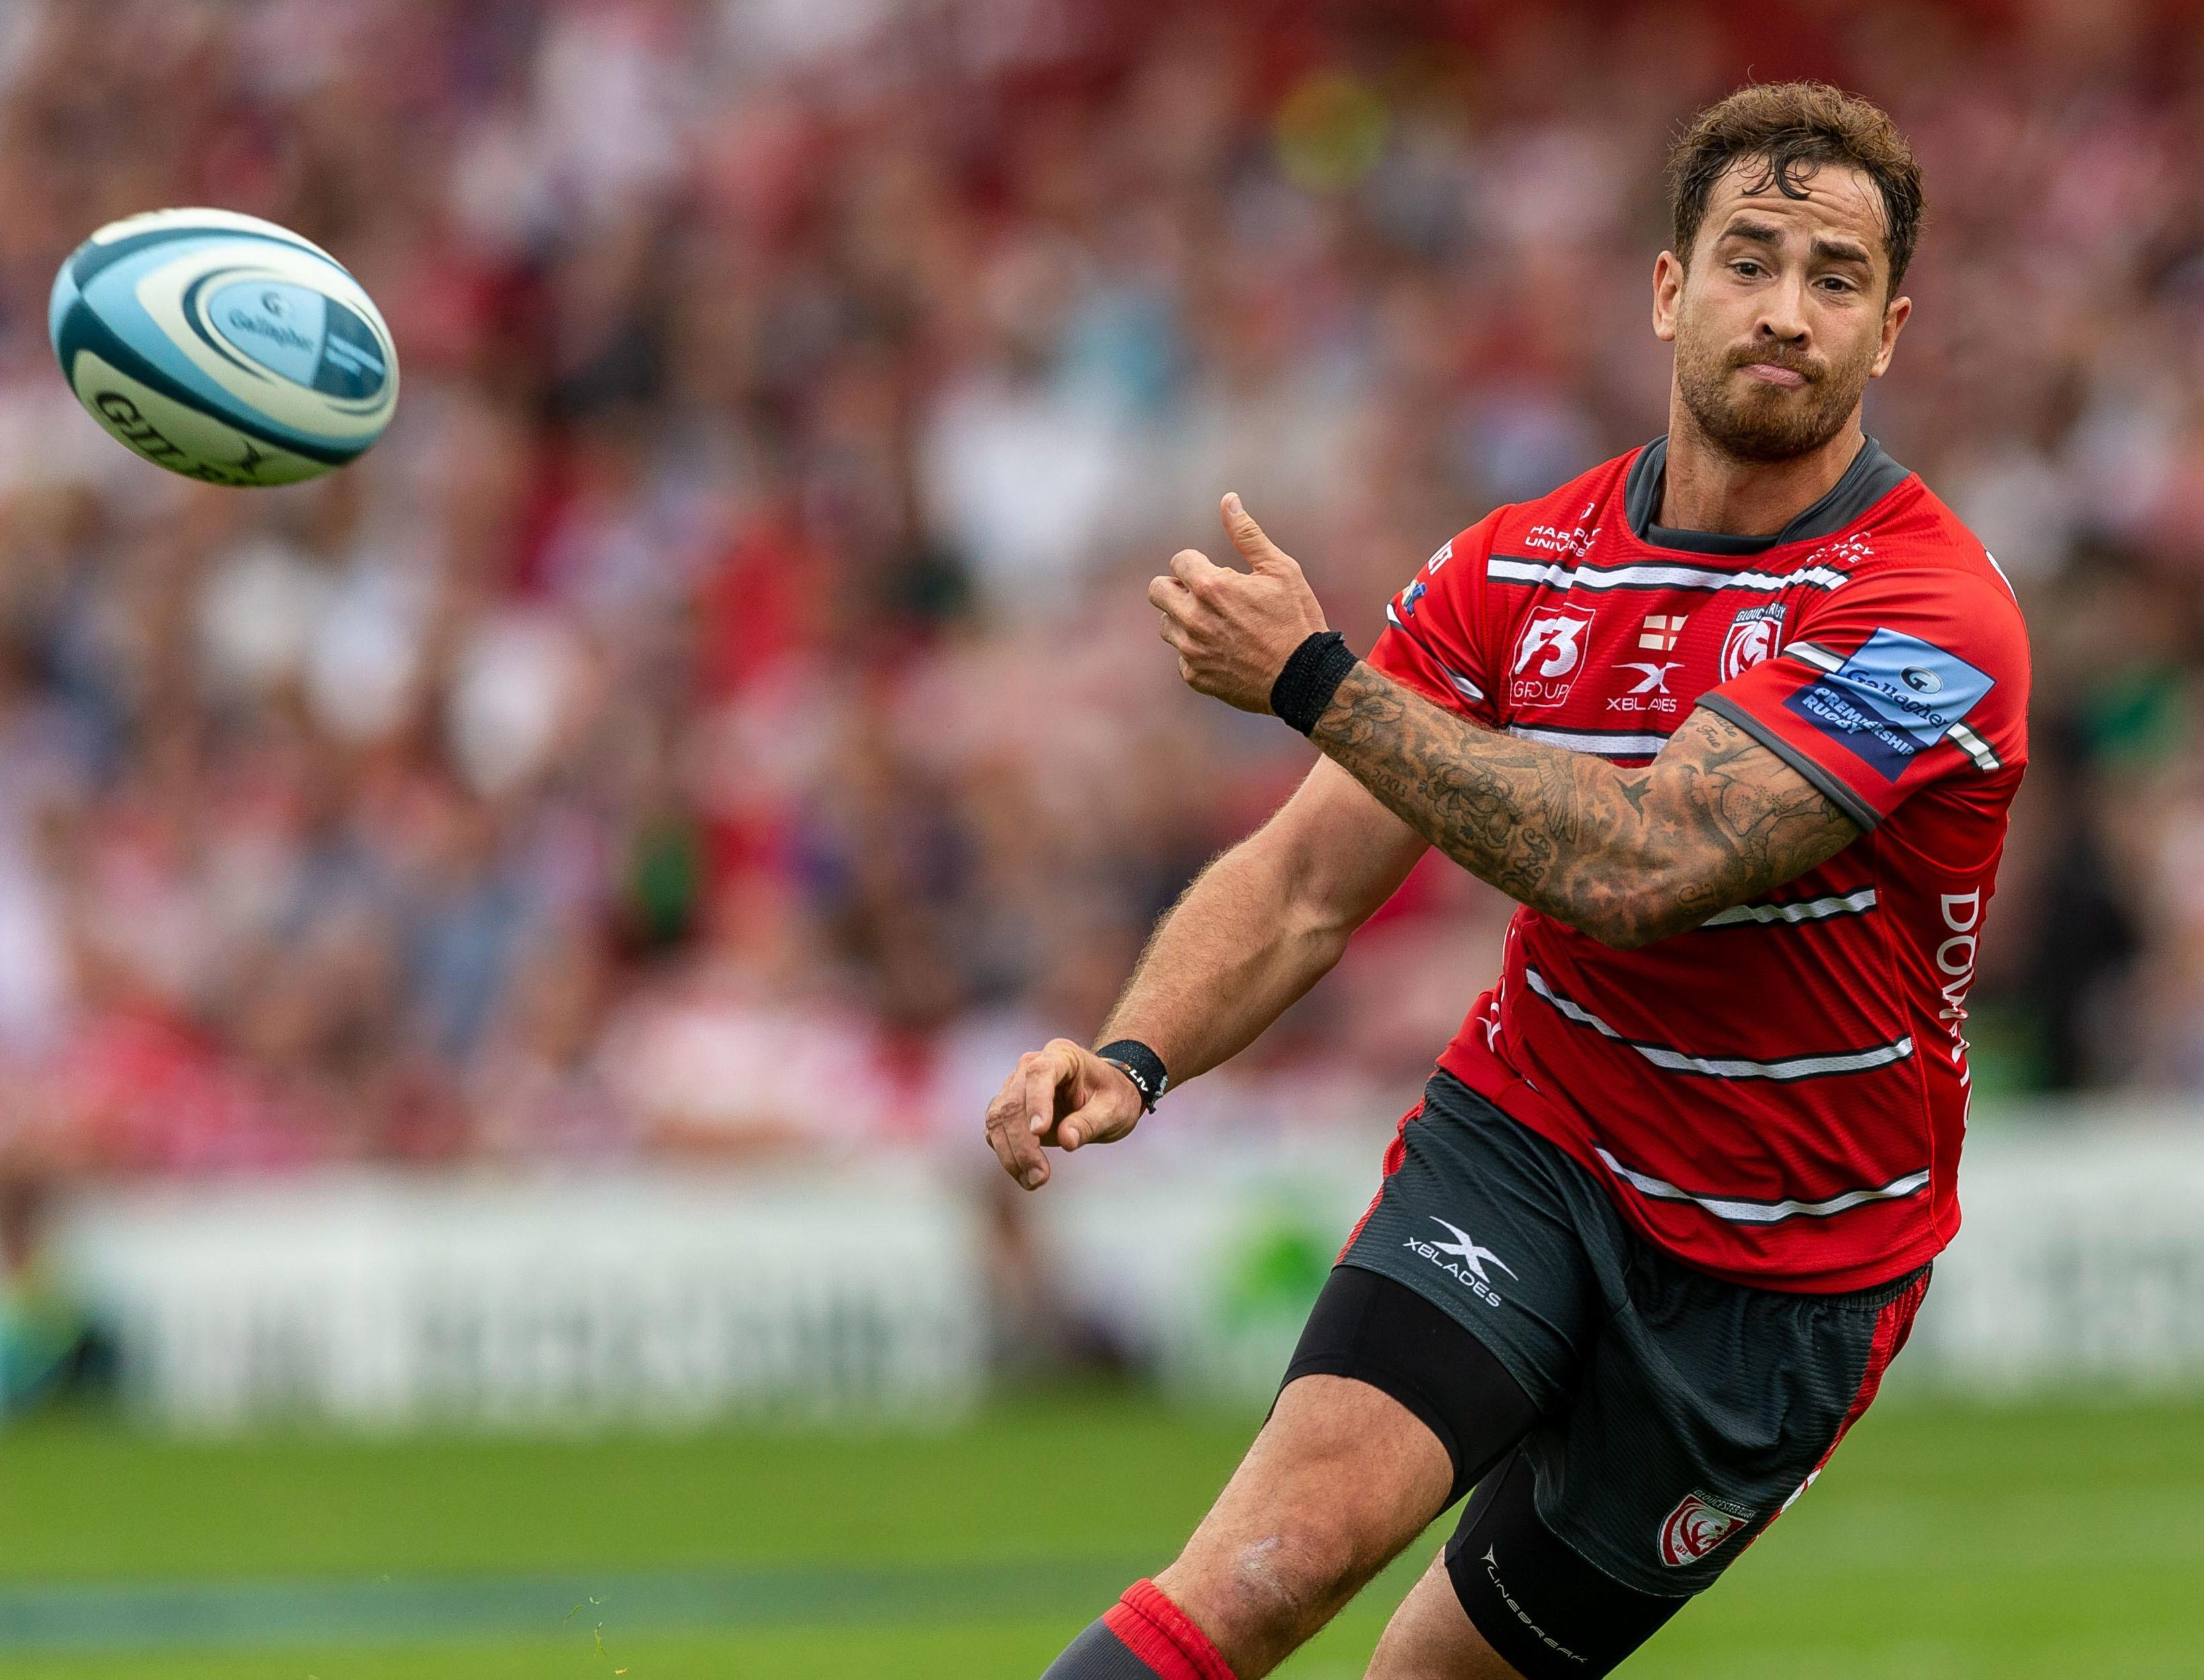 Danny Cipriani threw the pass of the round against Northampton Saints back in September - the same month he was named as the Premiership's best player